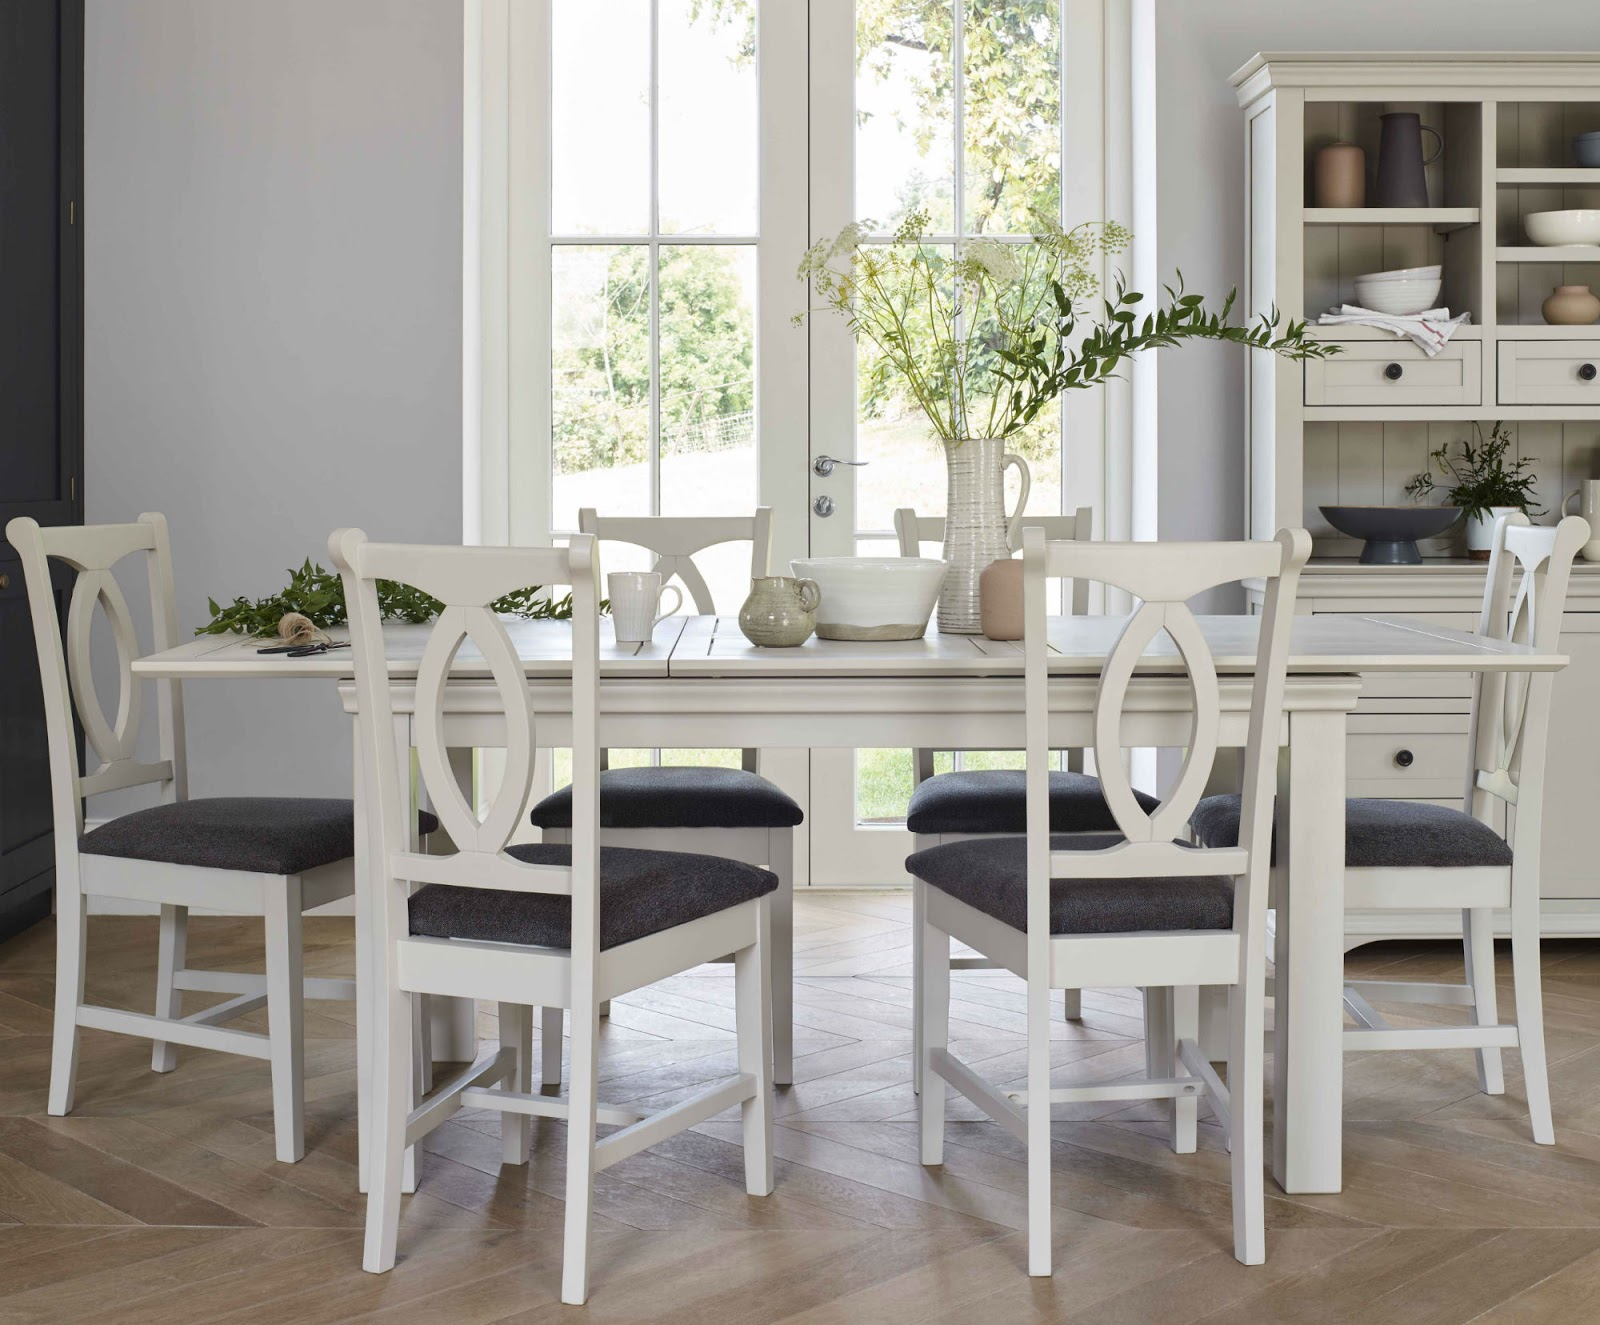 Arlette White Dining Table with flowers